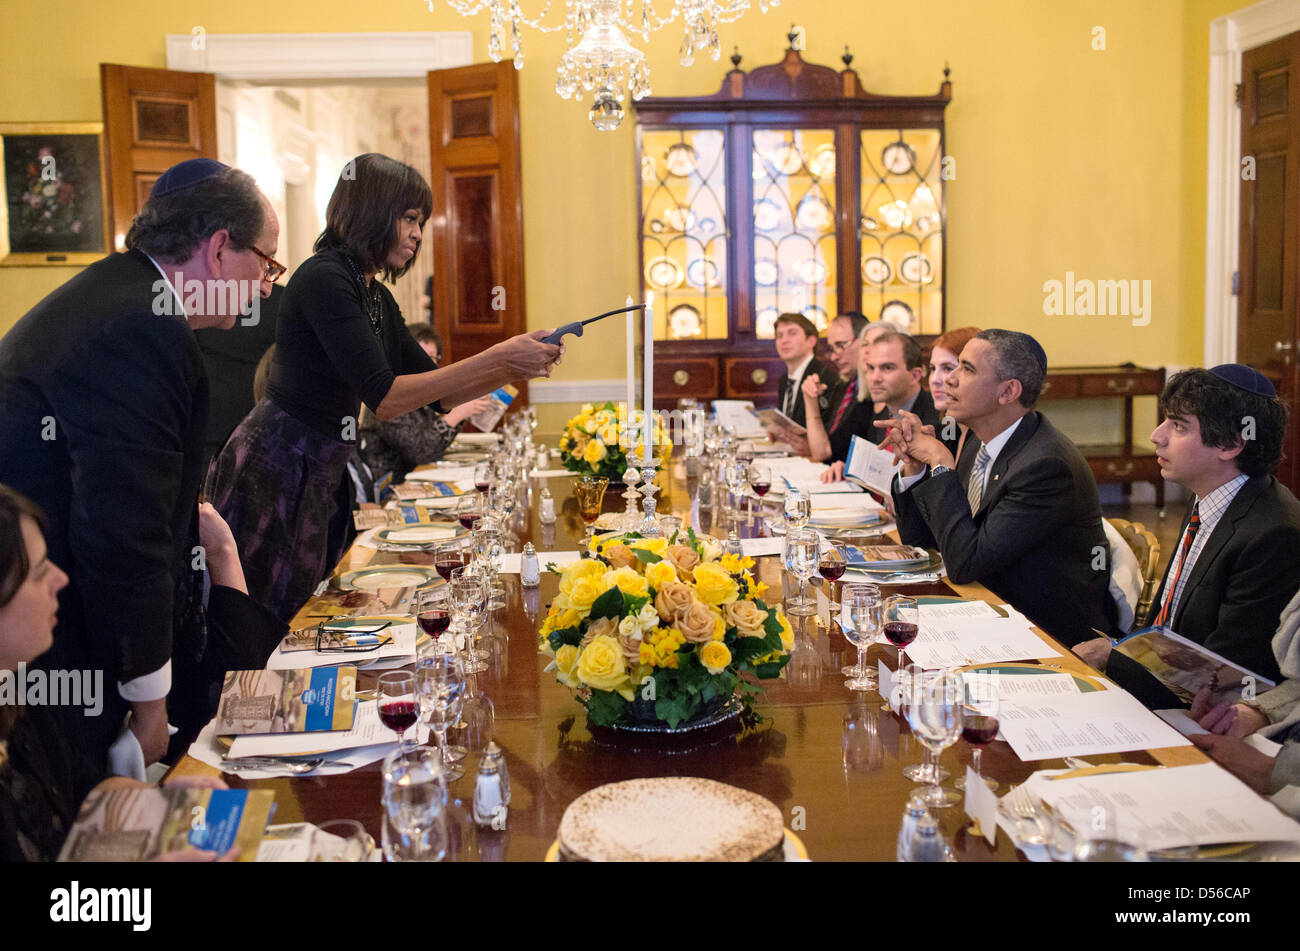 US President Barack Obama and First Lady Michelle Obama host a Passover Seder Dinner for family, staff and friends - Stock Image